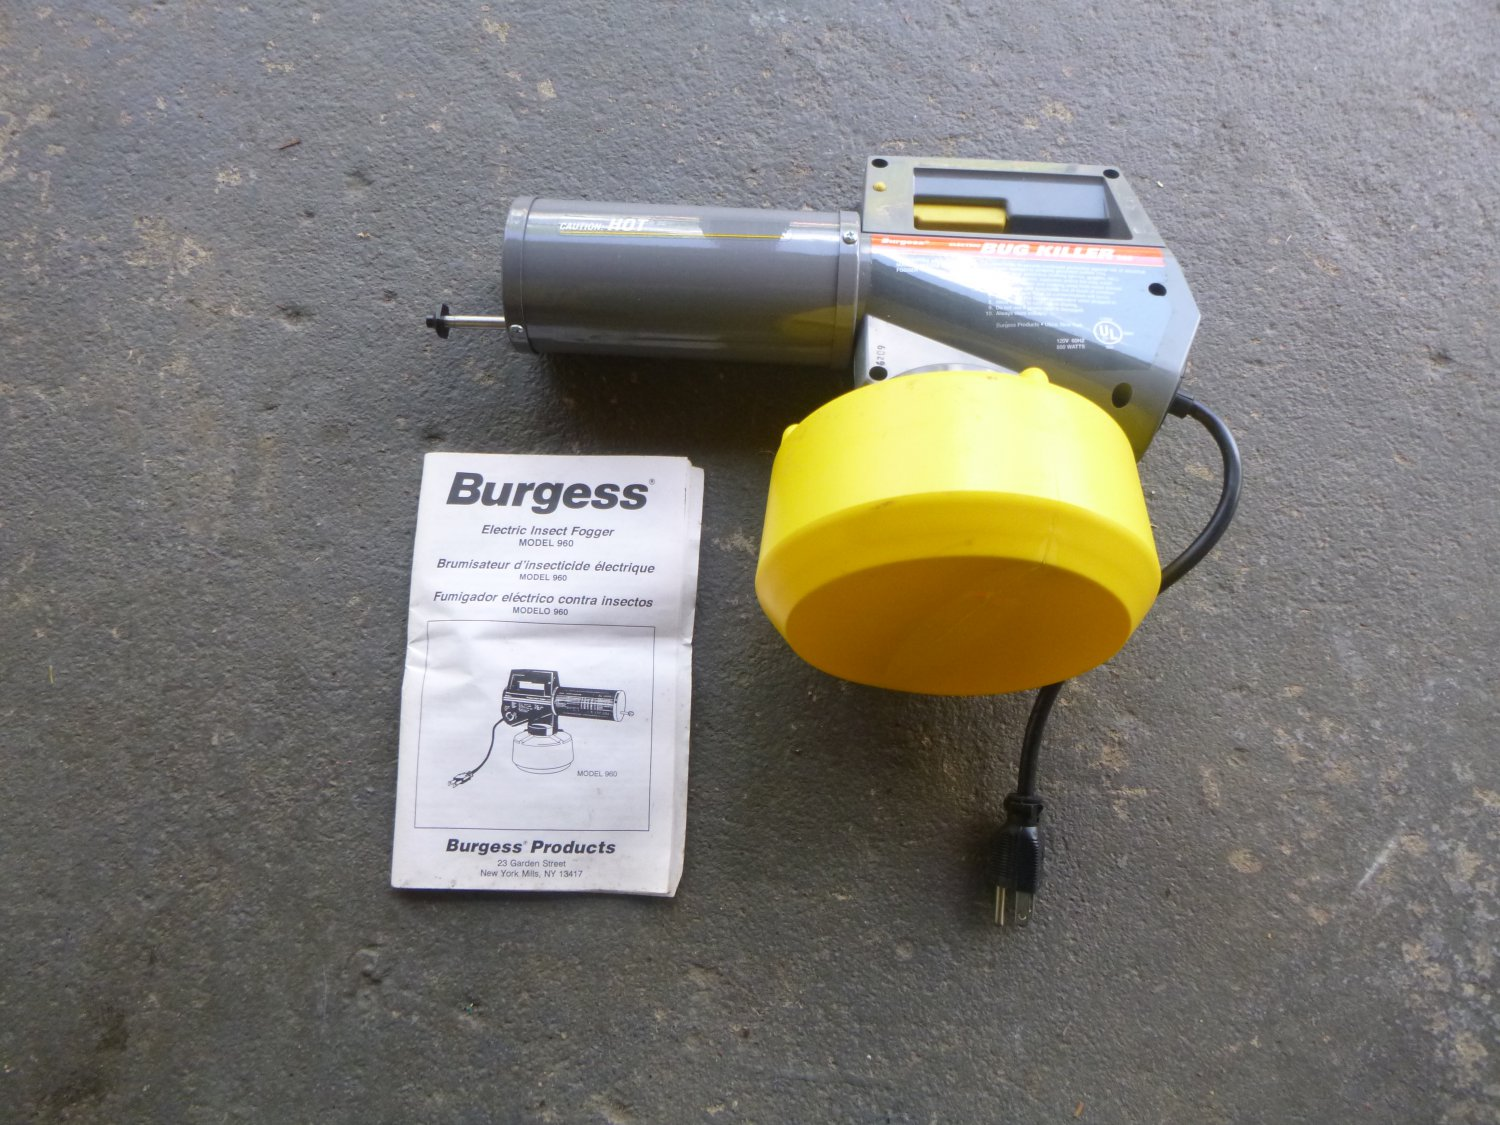 Burgess Model 960 Electric Insect Fogger